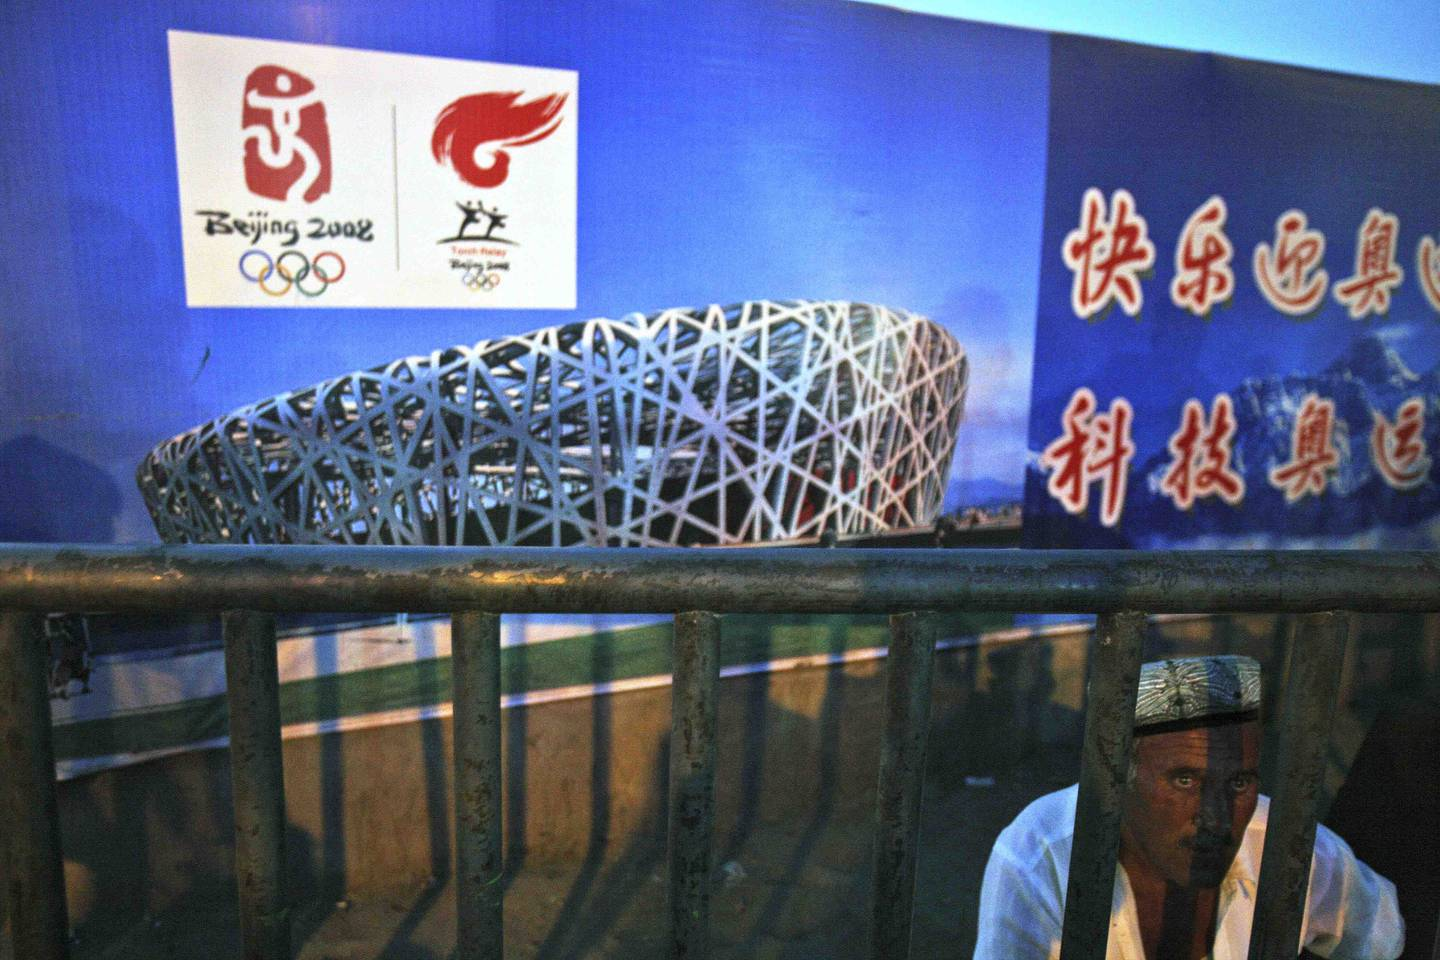 A Uighur pedlar waits for customers near a Beijing Olympics billboard showing the Bird Nest National Stadium in Kashgar, western China's Xinjiang province, Tuesday, Aug. 5, 2008. The attack by two Uighurs, a mainly Muslim ethnic minority group, killing 16 police on Monday triggered a full security alert in the restive Muslim territory just days before the Olympic Games. (AP Photo/Ng Han Guan)